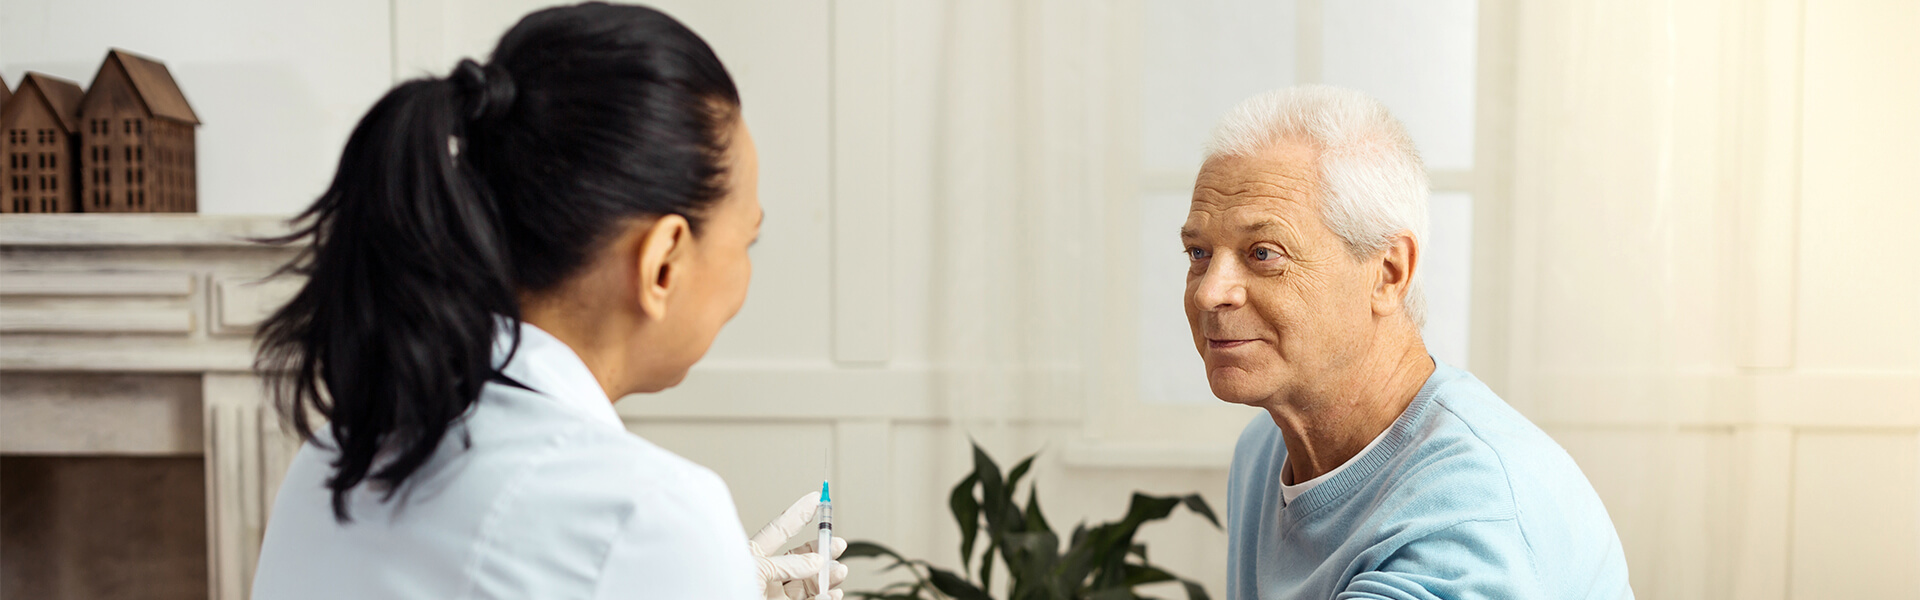 Conducting Your Skilled Nursing Facility Risk Analysis